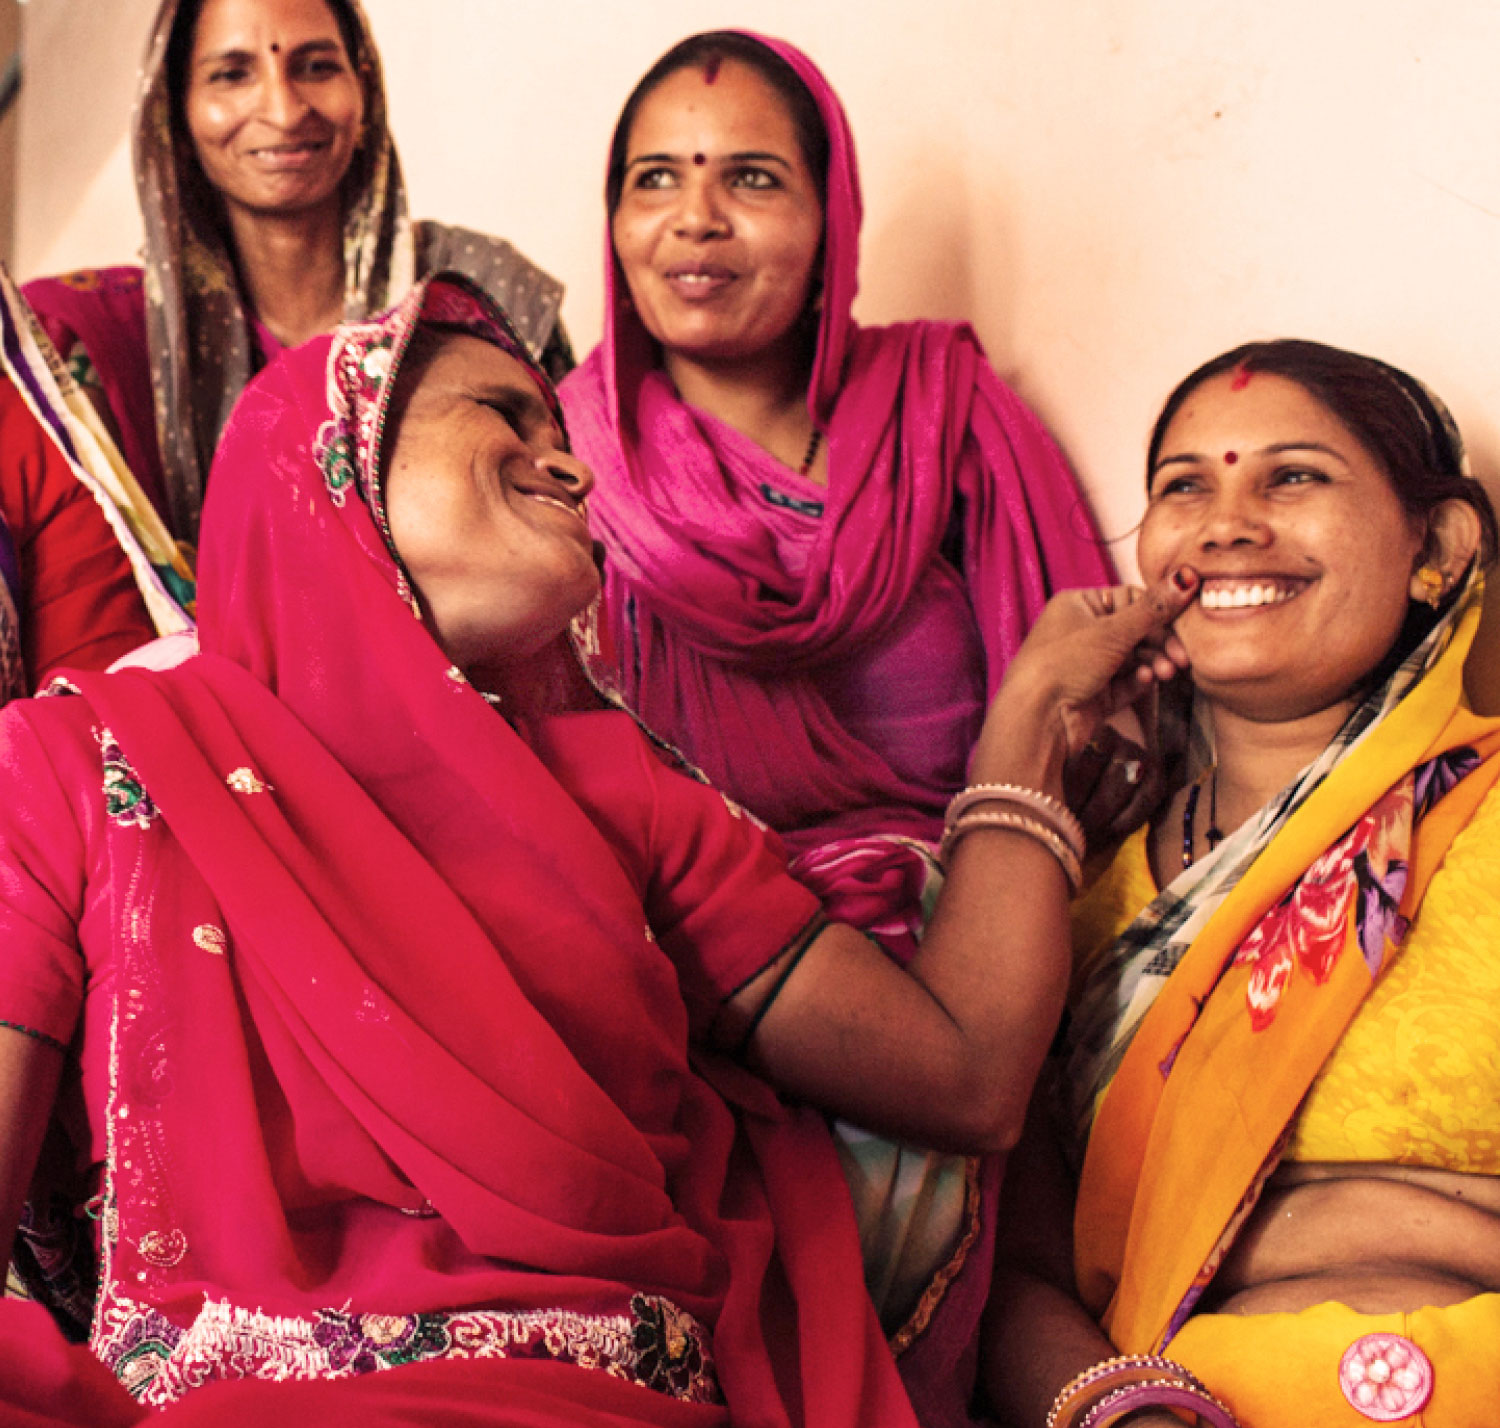 Four women smile at each other